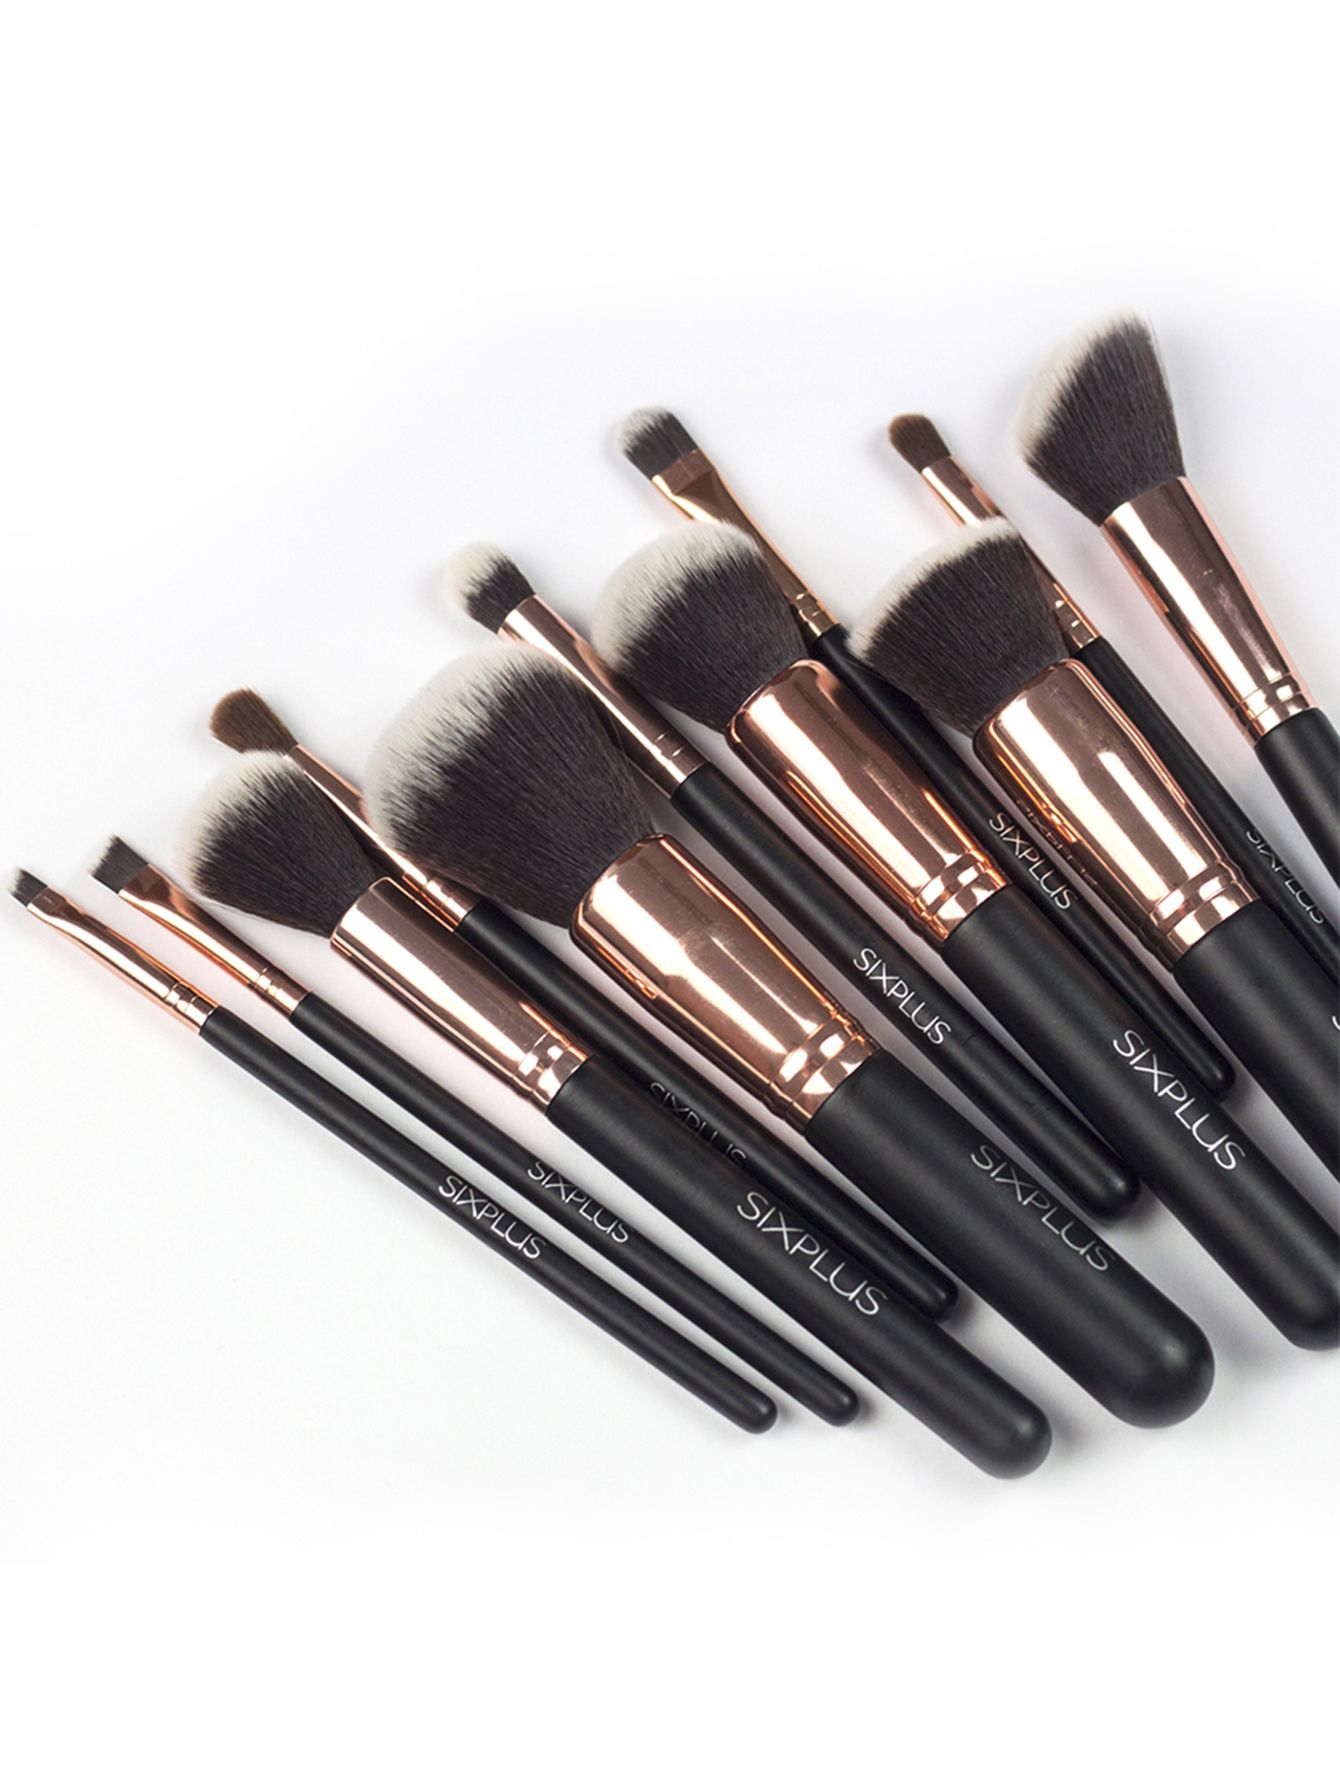 7dce3f7261 Shop Professional Makeup Brush Set online. SheIn offers Professional Makeup  Brush Set & more to fit your fashionable needs.